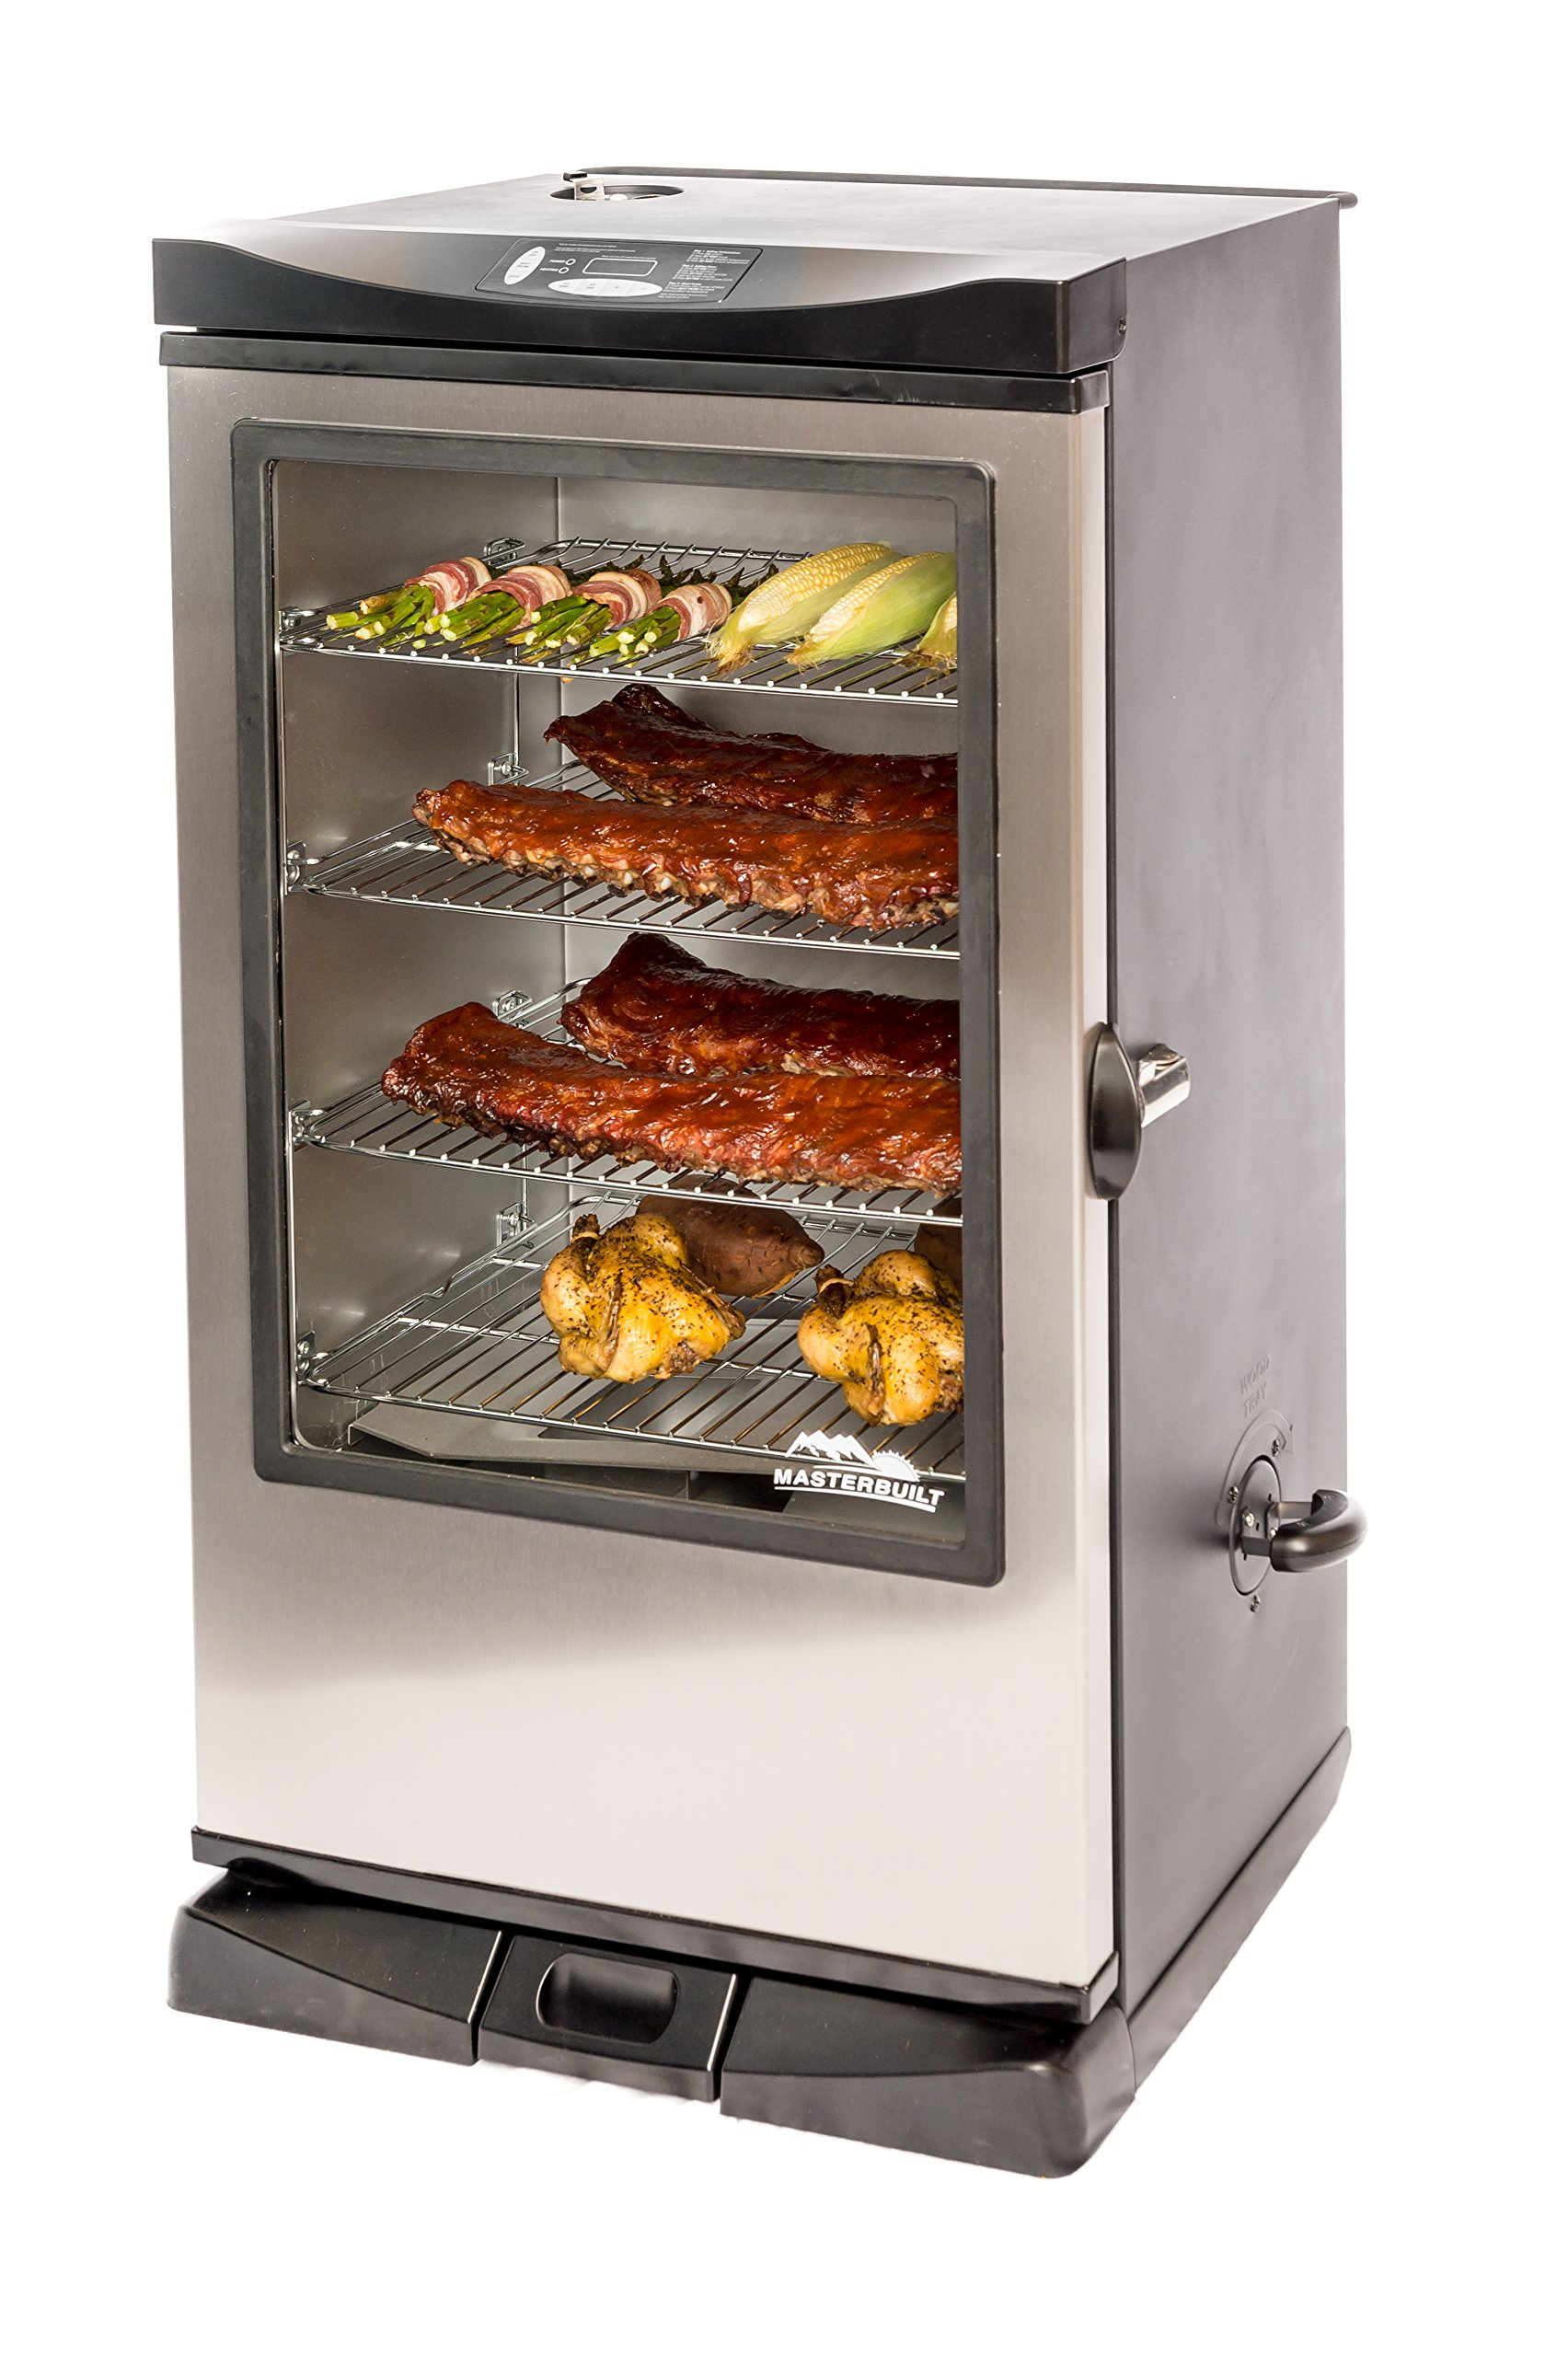 Masterbuilt 20075315 Front Controller Smoker with Viewing Window and RF Remote Control, 40-Inch by Masterbuilt